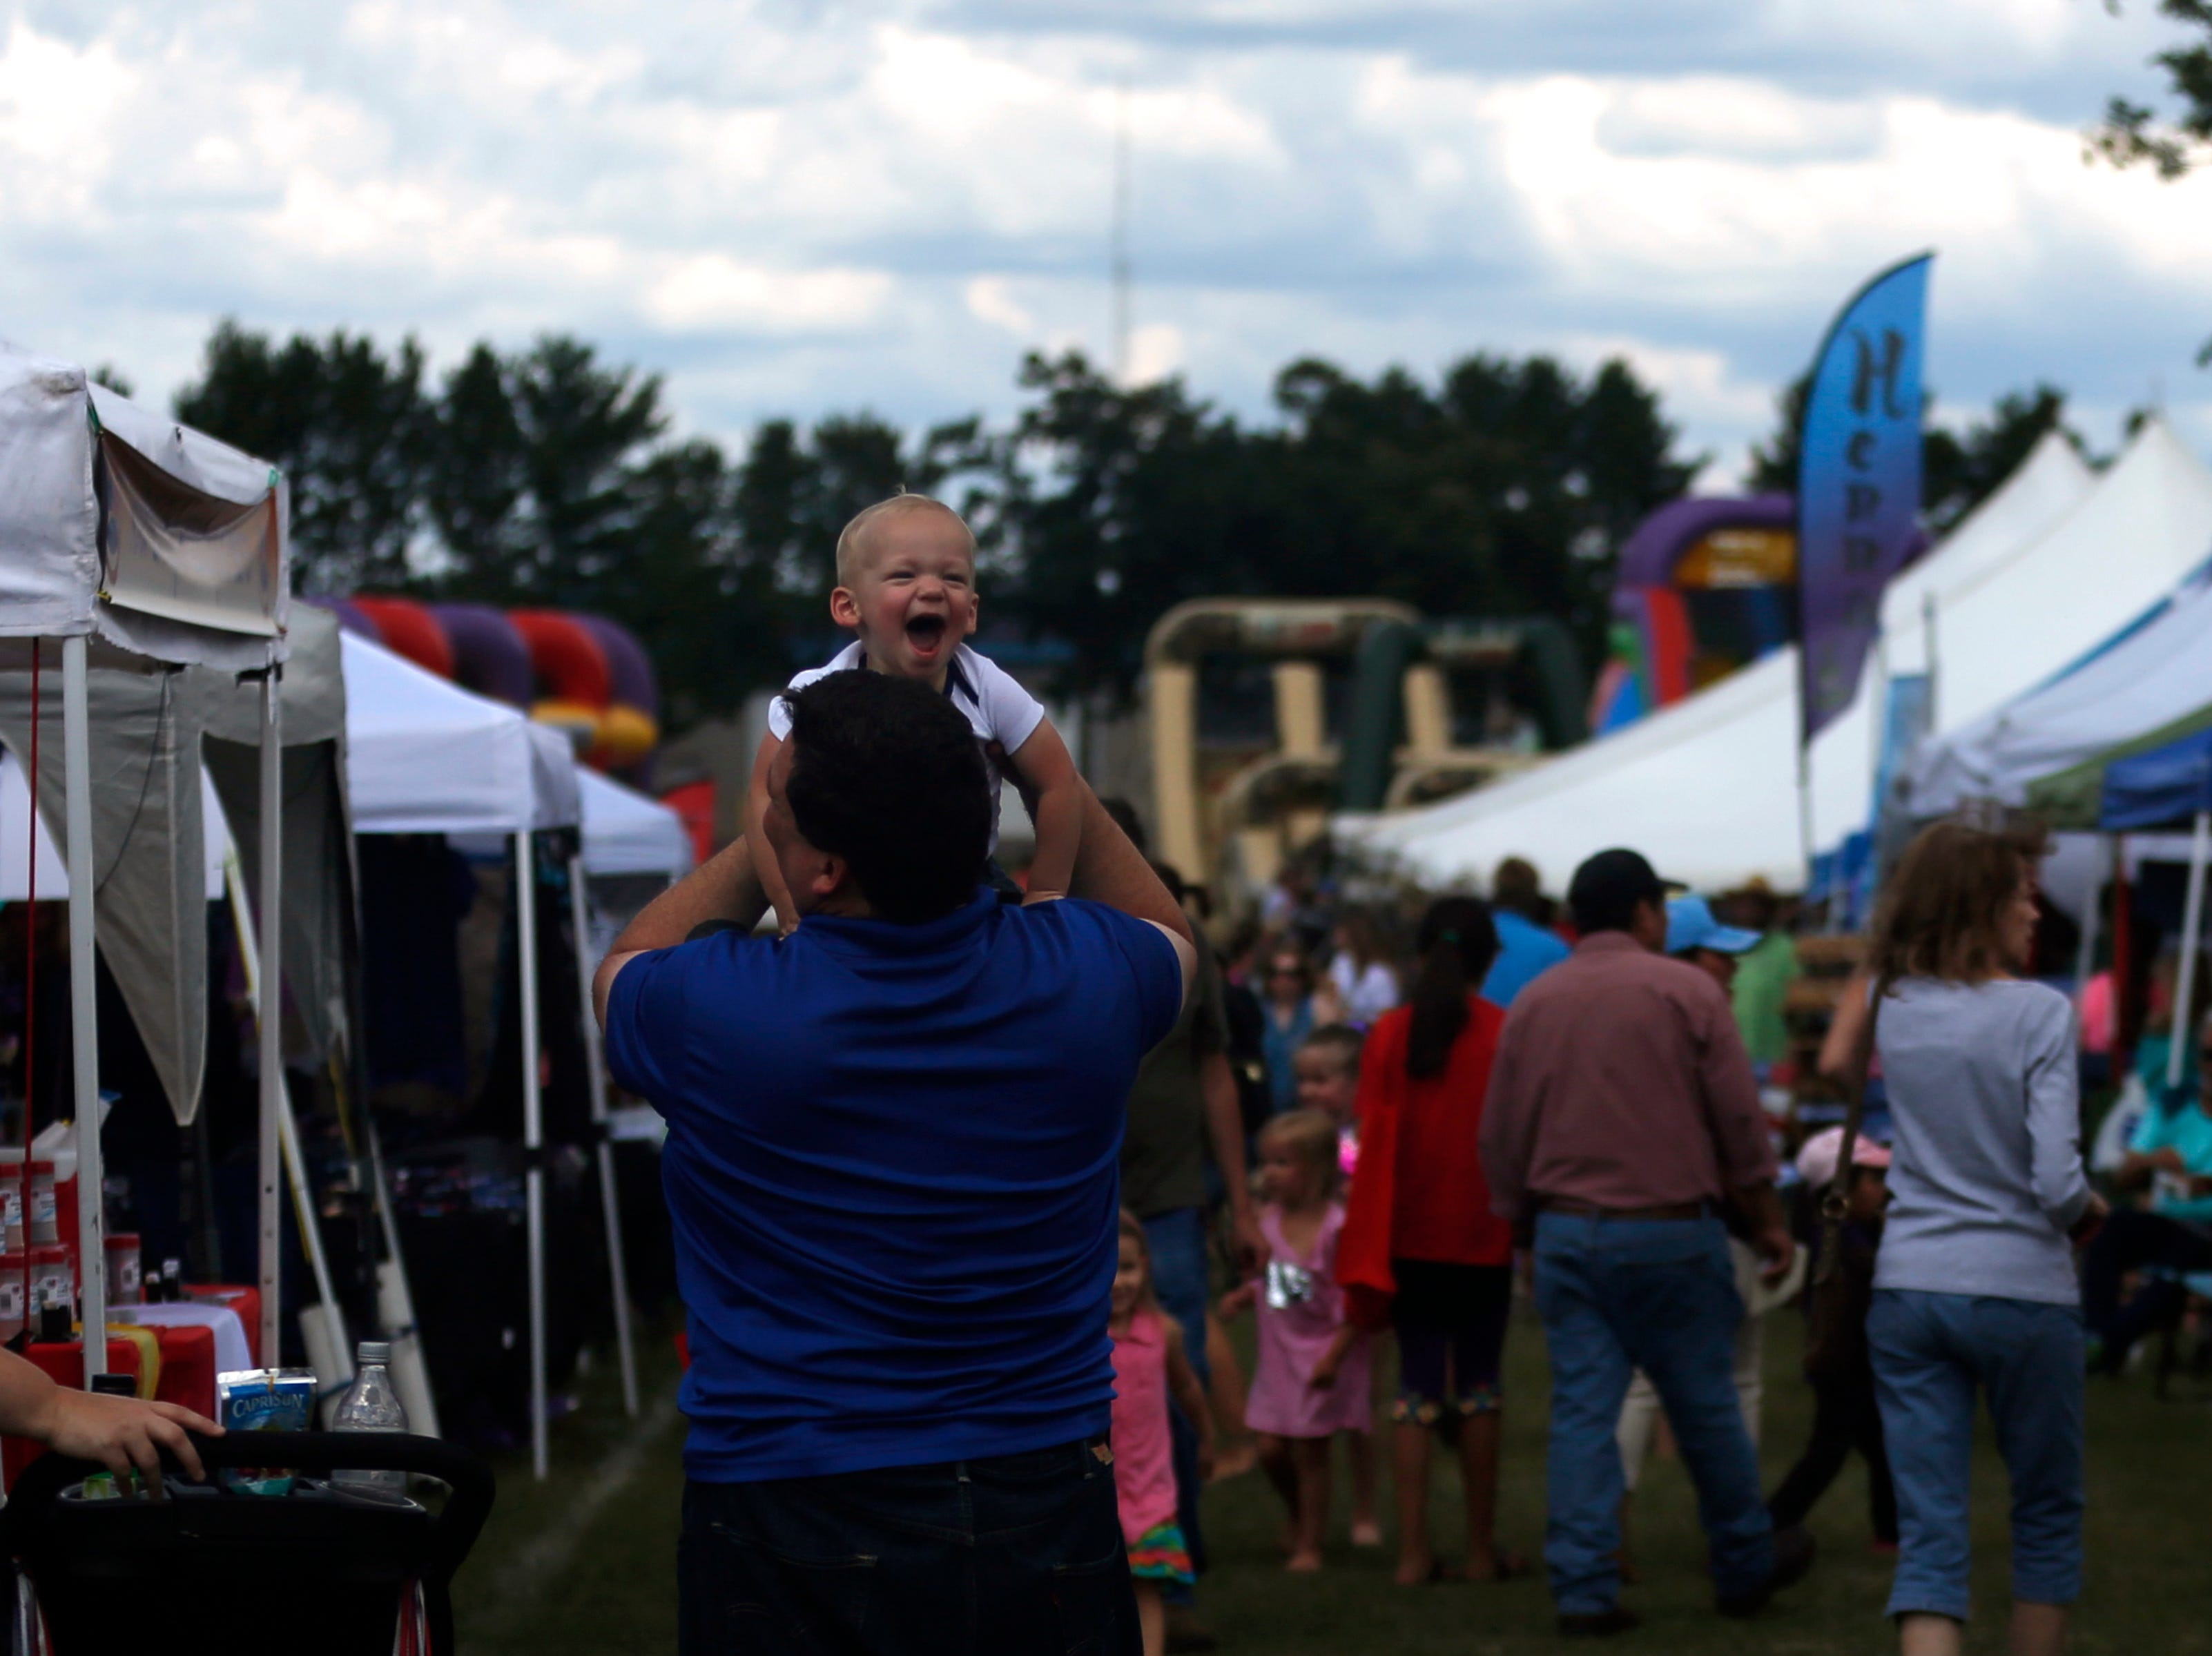 A baby laughs while being played with during Celebrate Plover at Lake Pacawa Park in Plover, Wis., July 28, 2018.